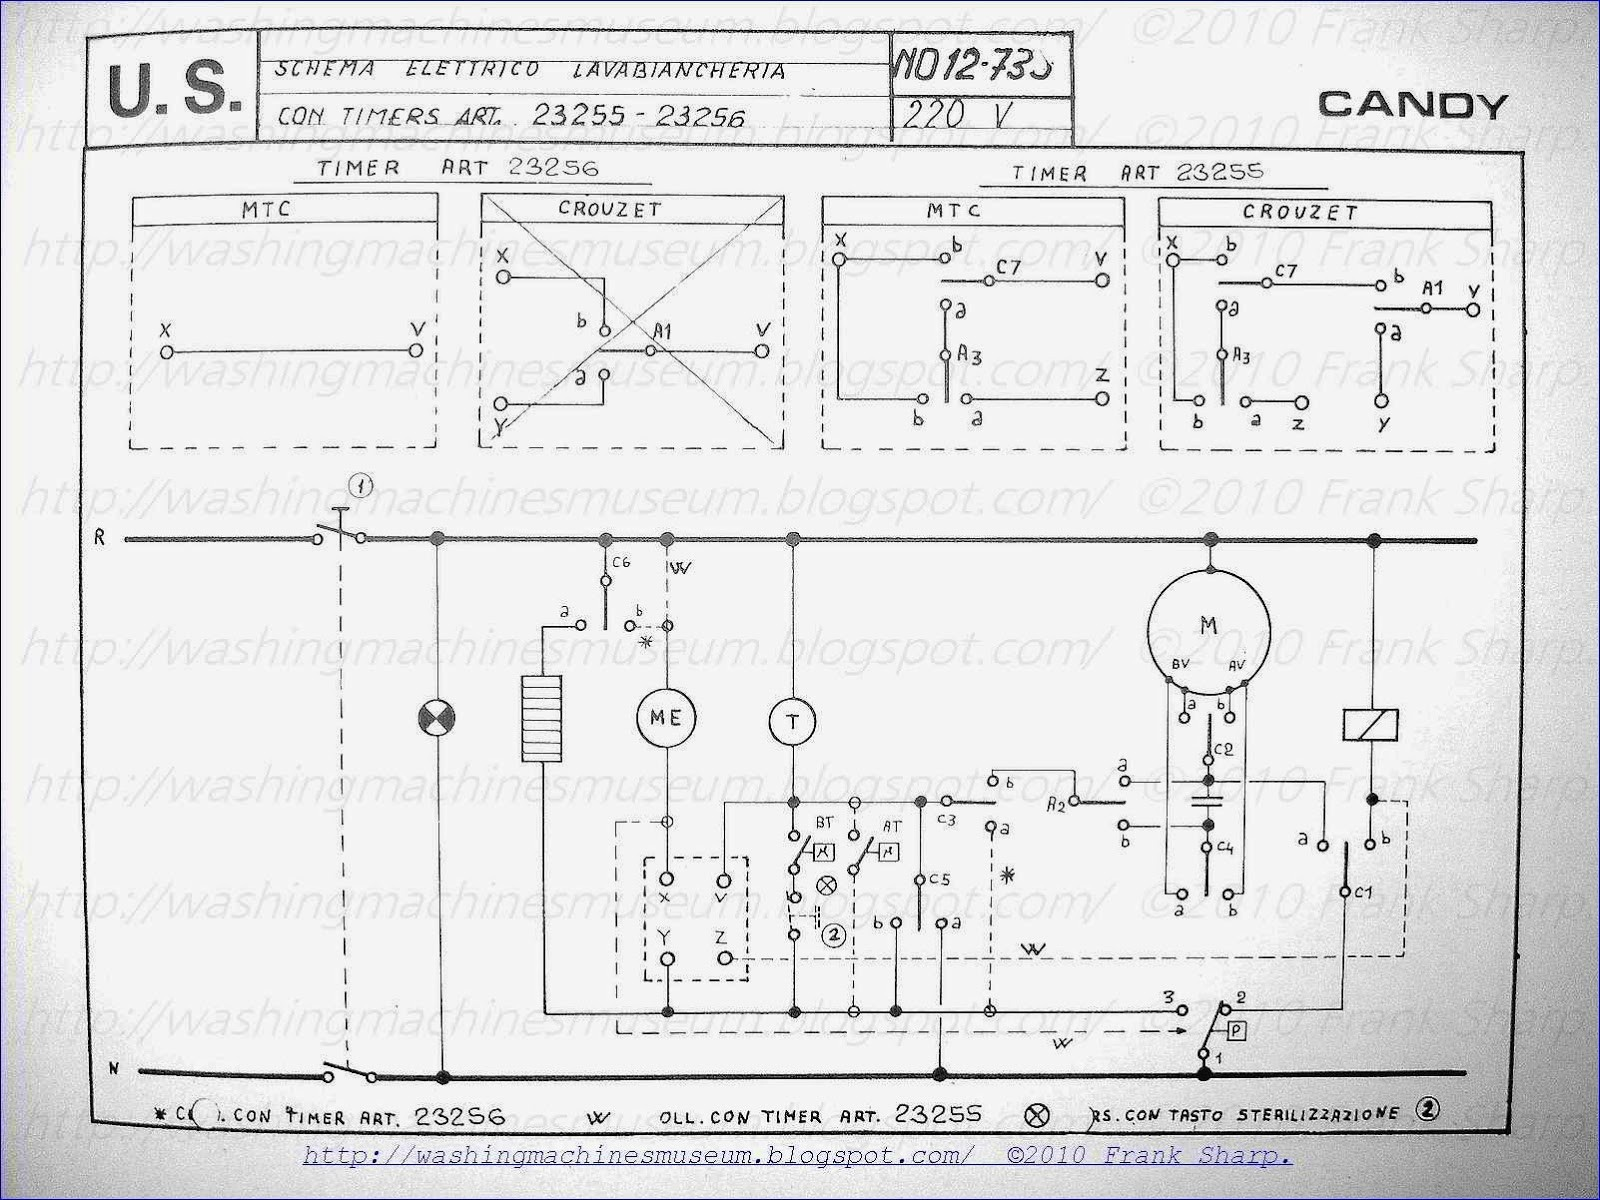 Wiring Diagram for Ge Dryer Door Switch Reference Hotpoint Oven Parts Diagram Lovely Ge Wj73x Fan